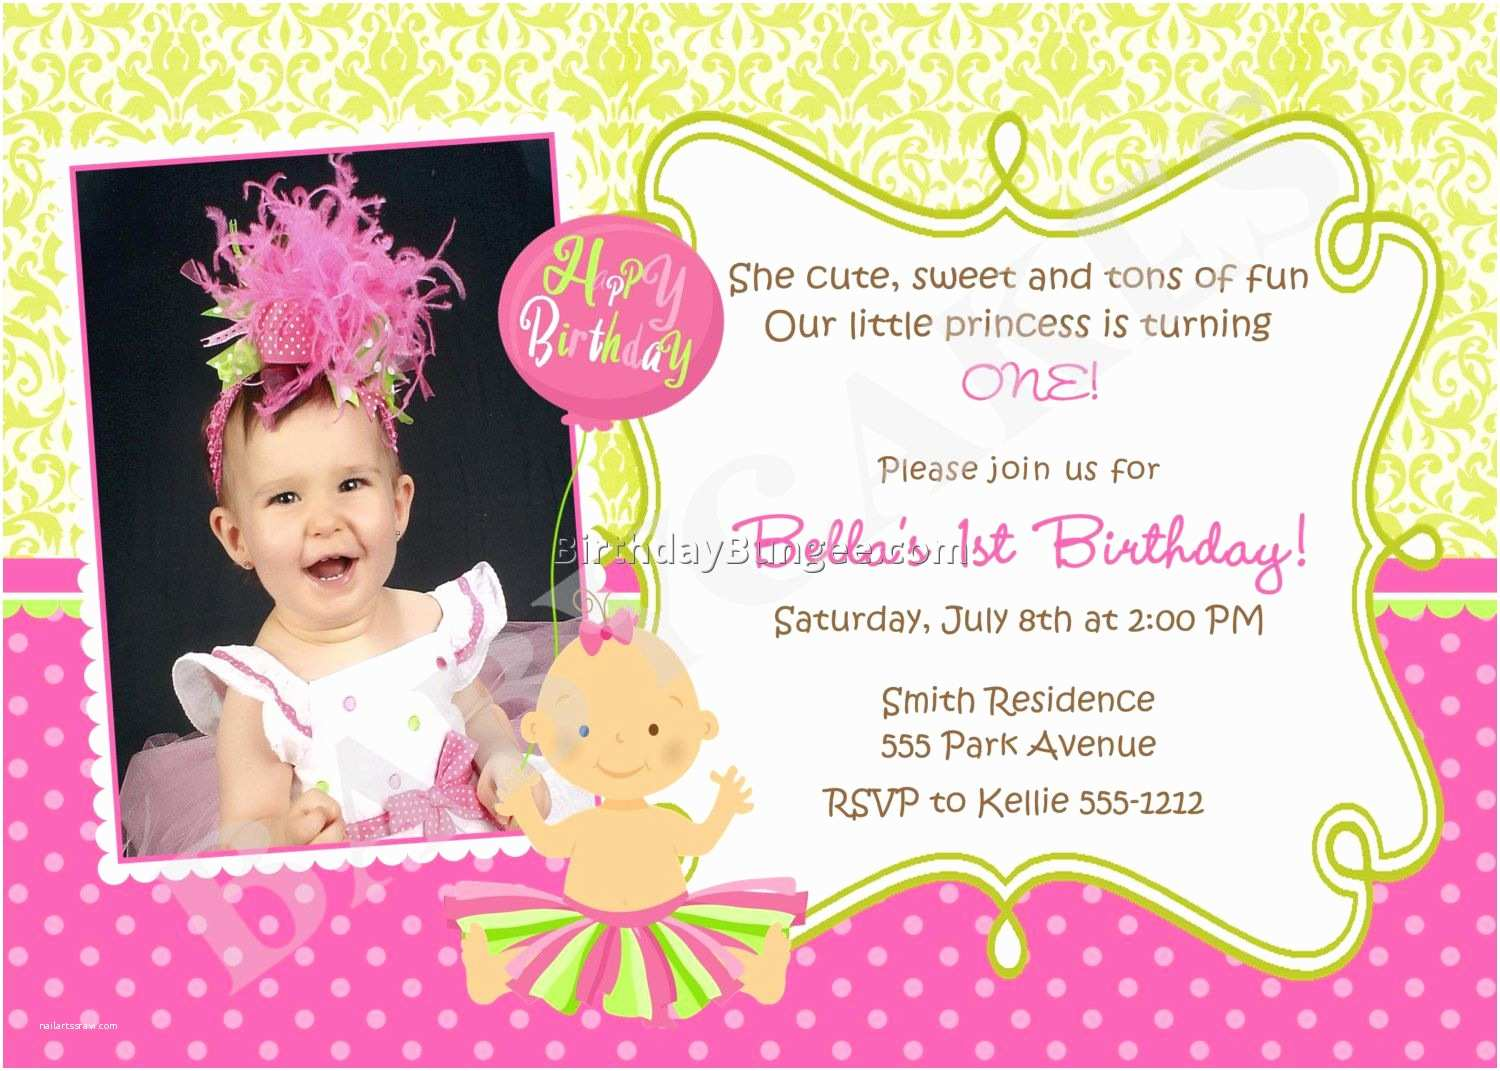 Girl Birthday Party Invitations 21 Kids Birthday Invitation Wording that We Can Make